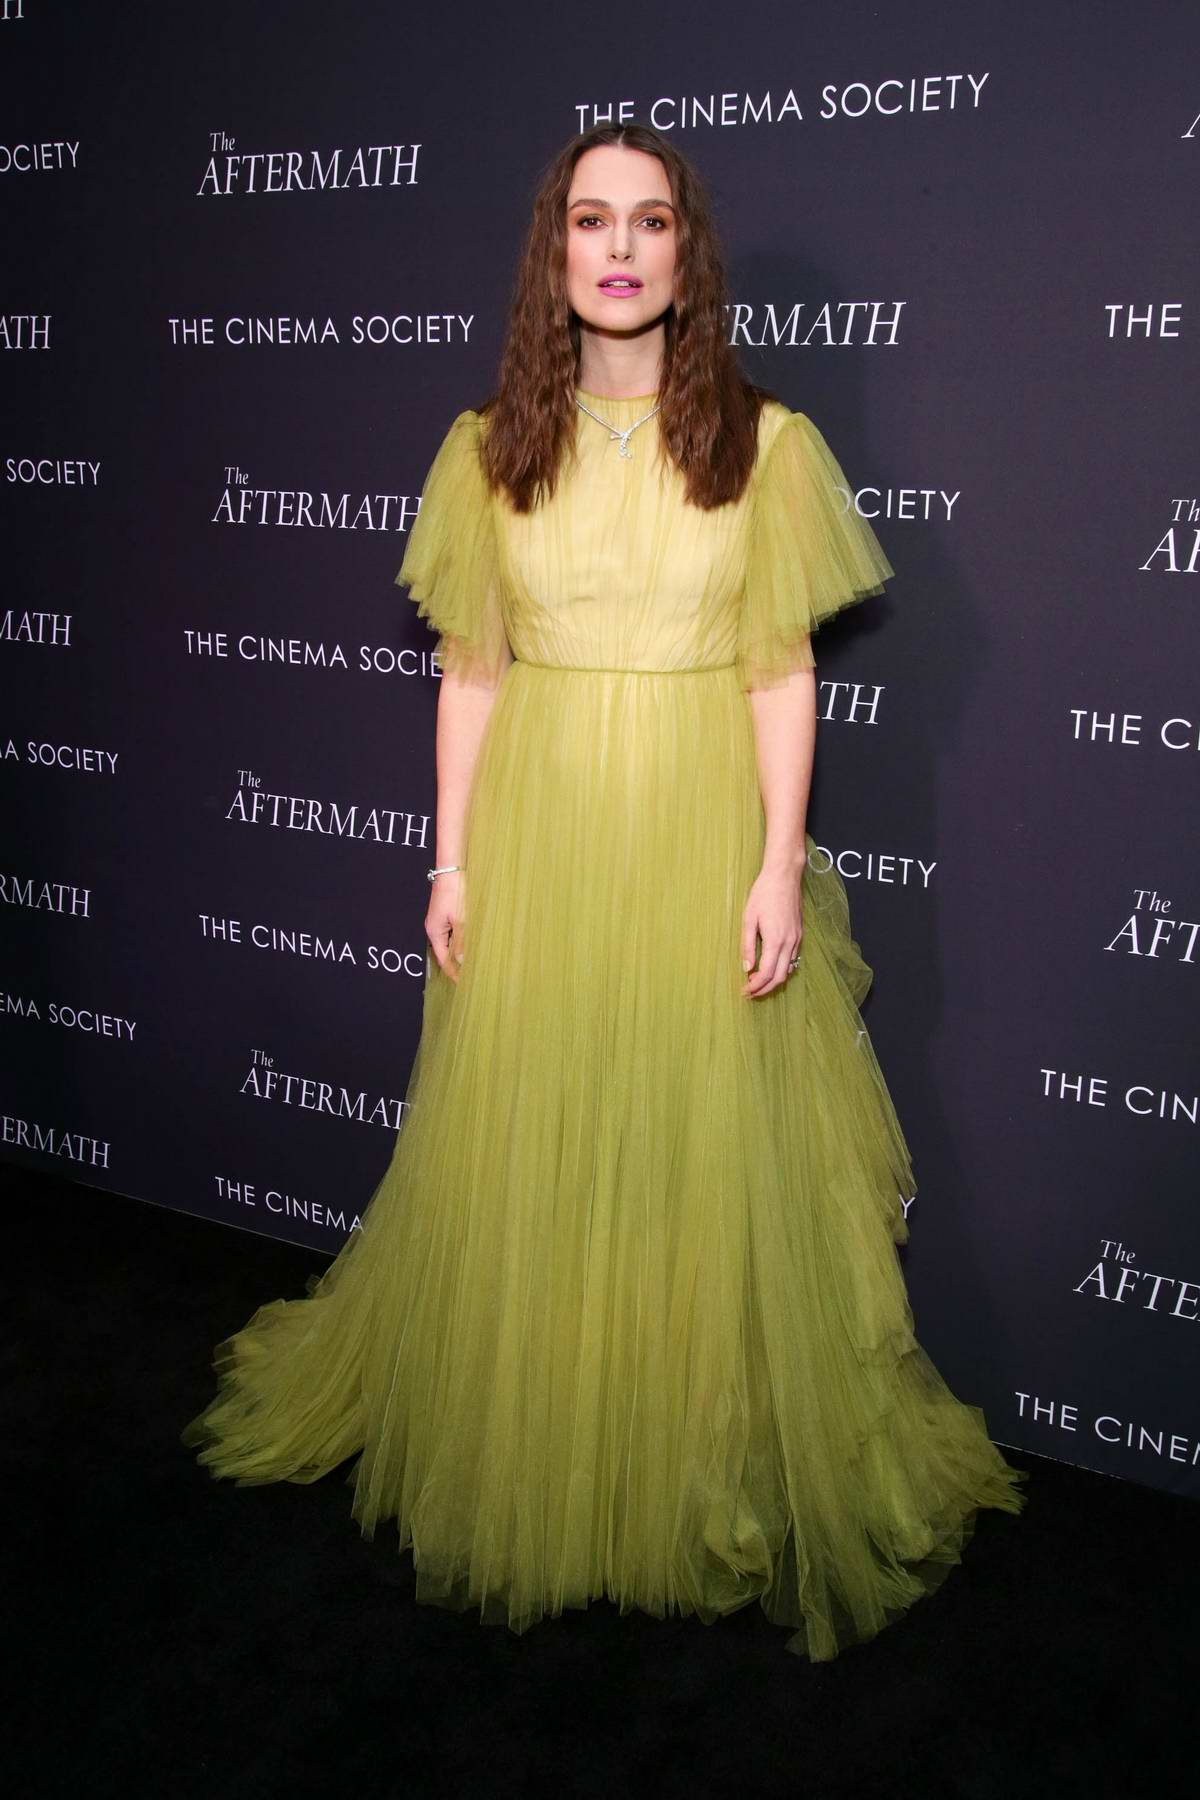 Keira Knightley attends 'The Aftermath' screening in New York City